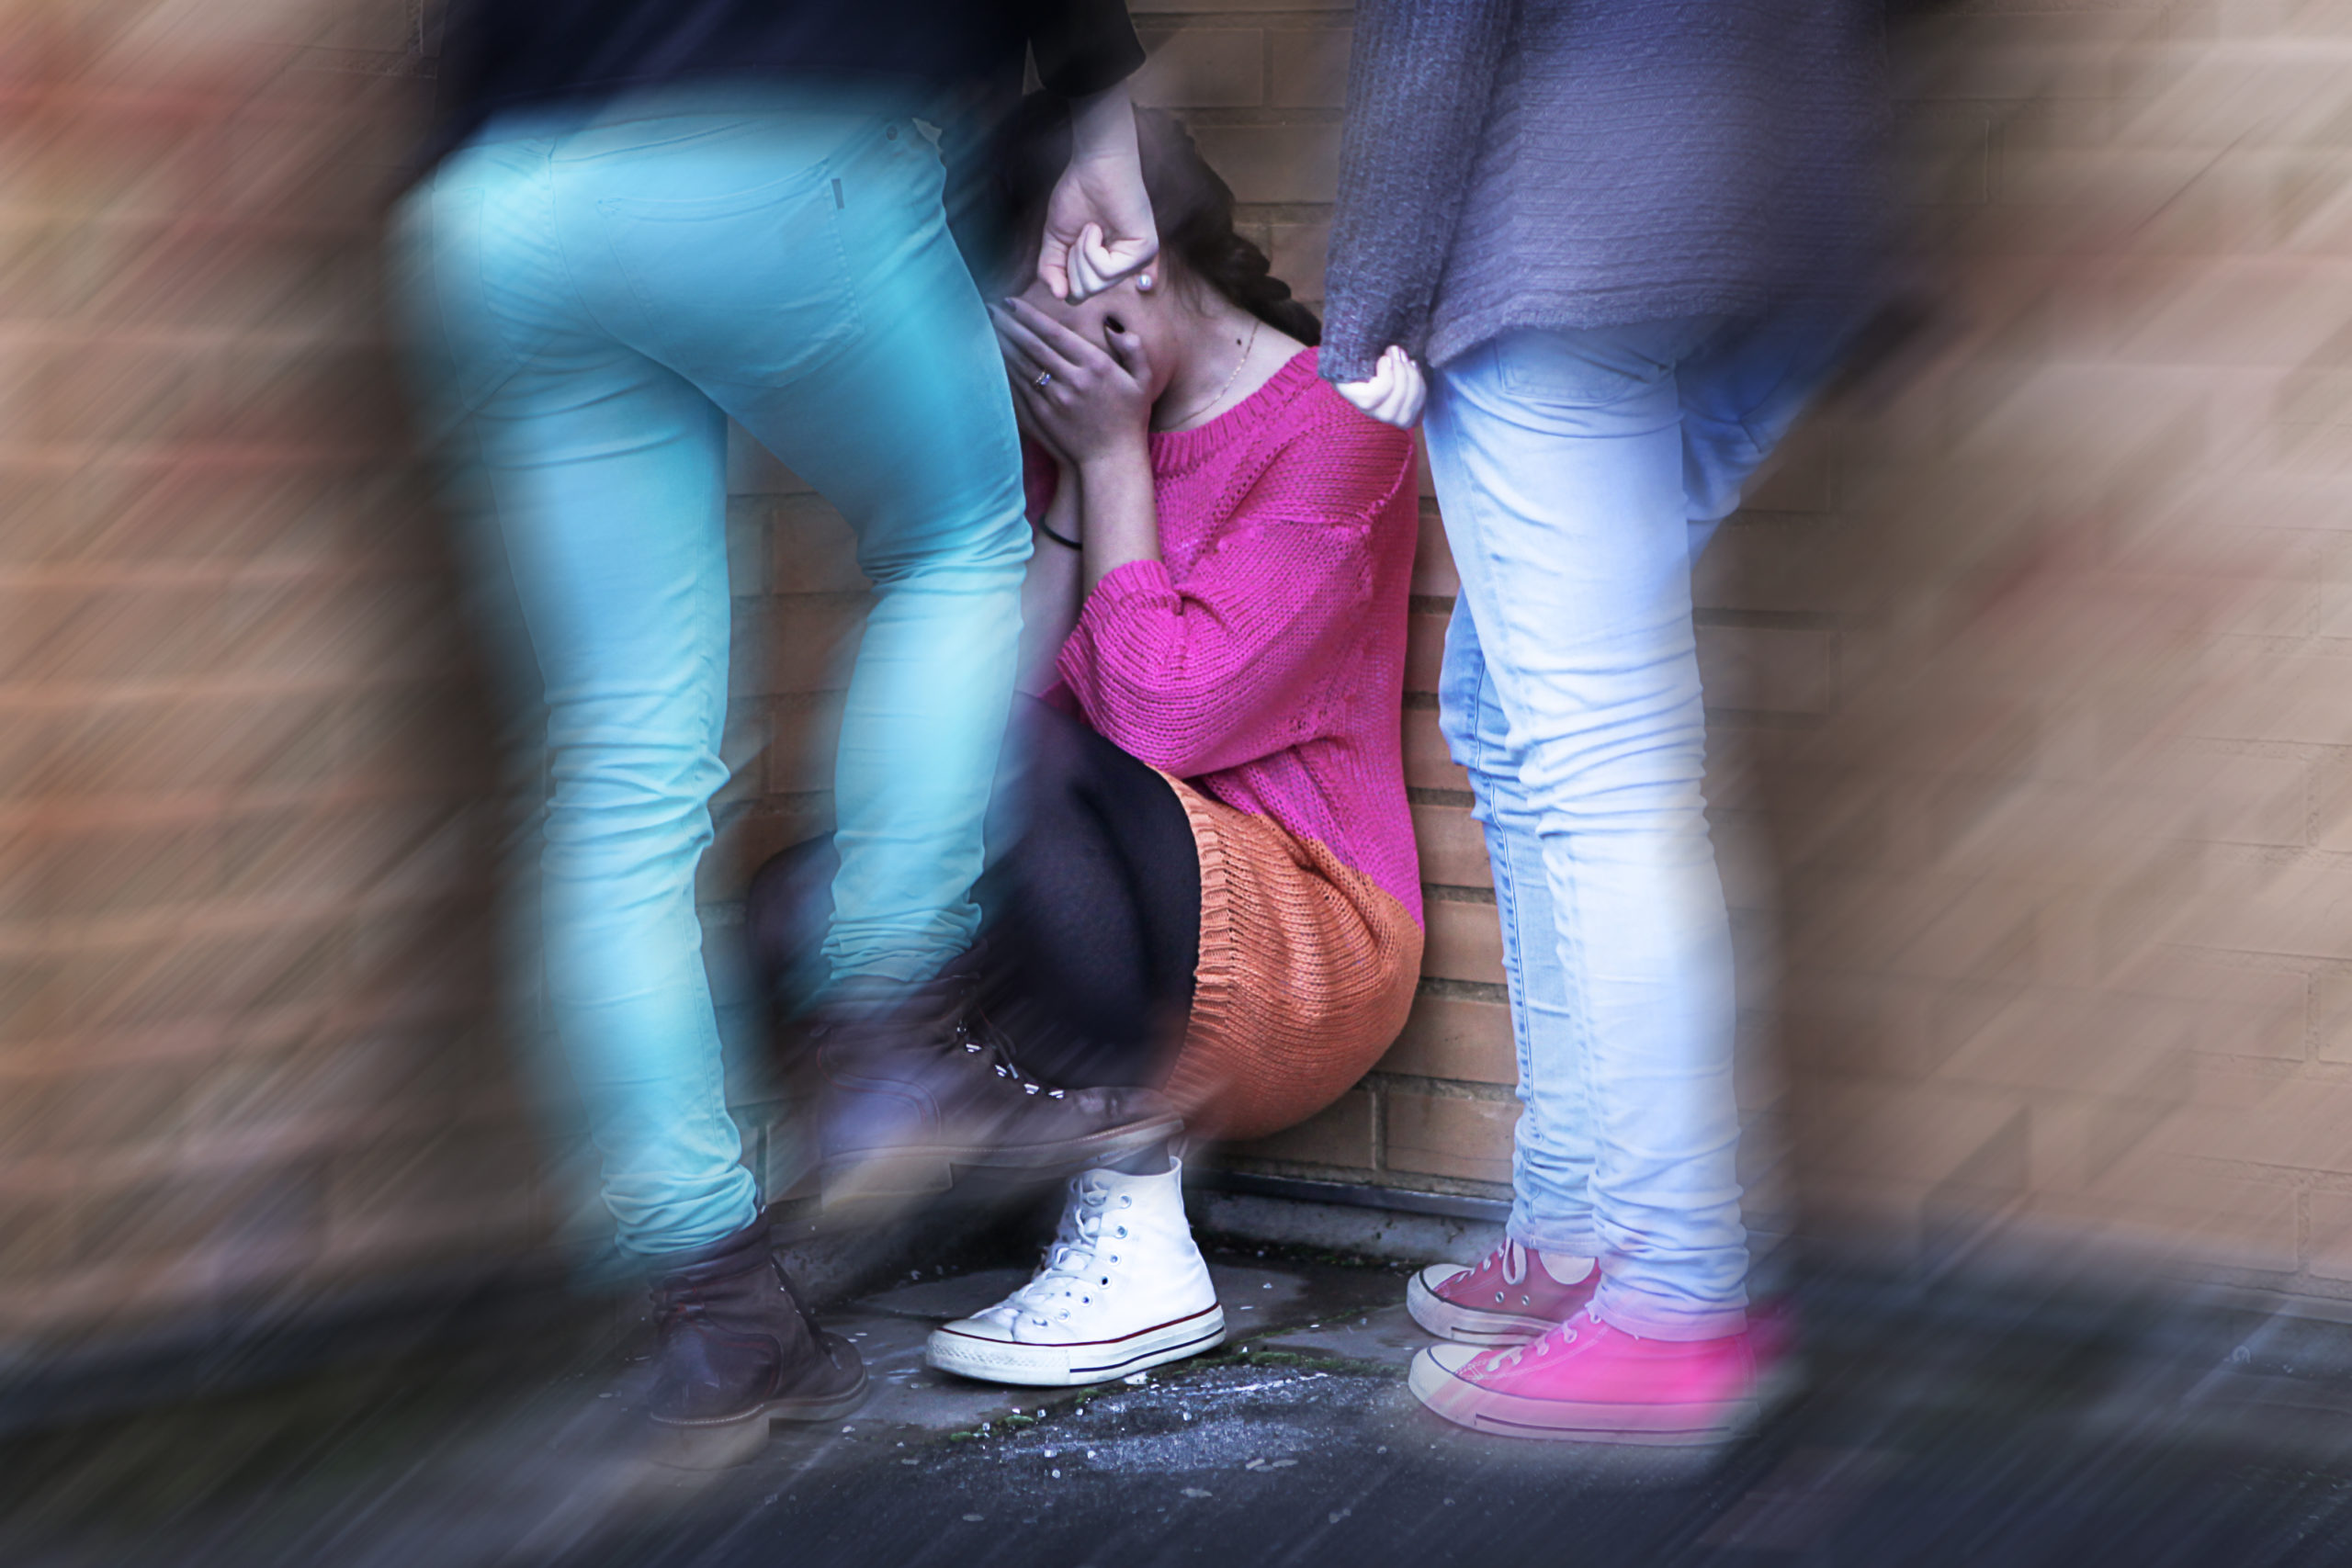 A girl being bullied